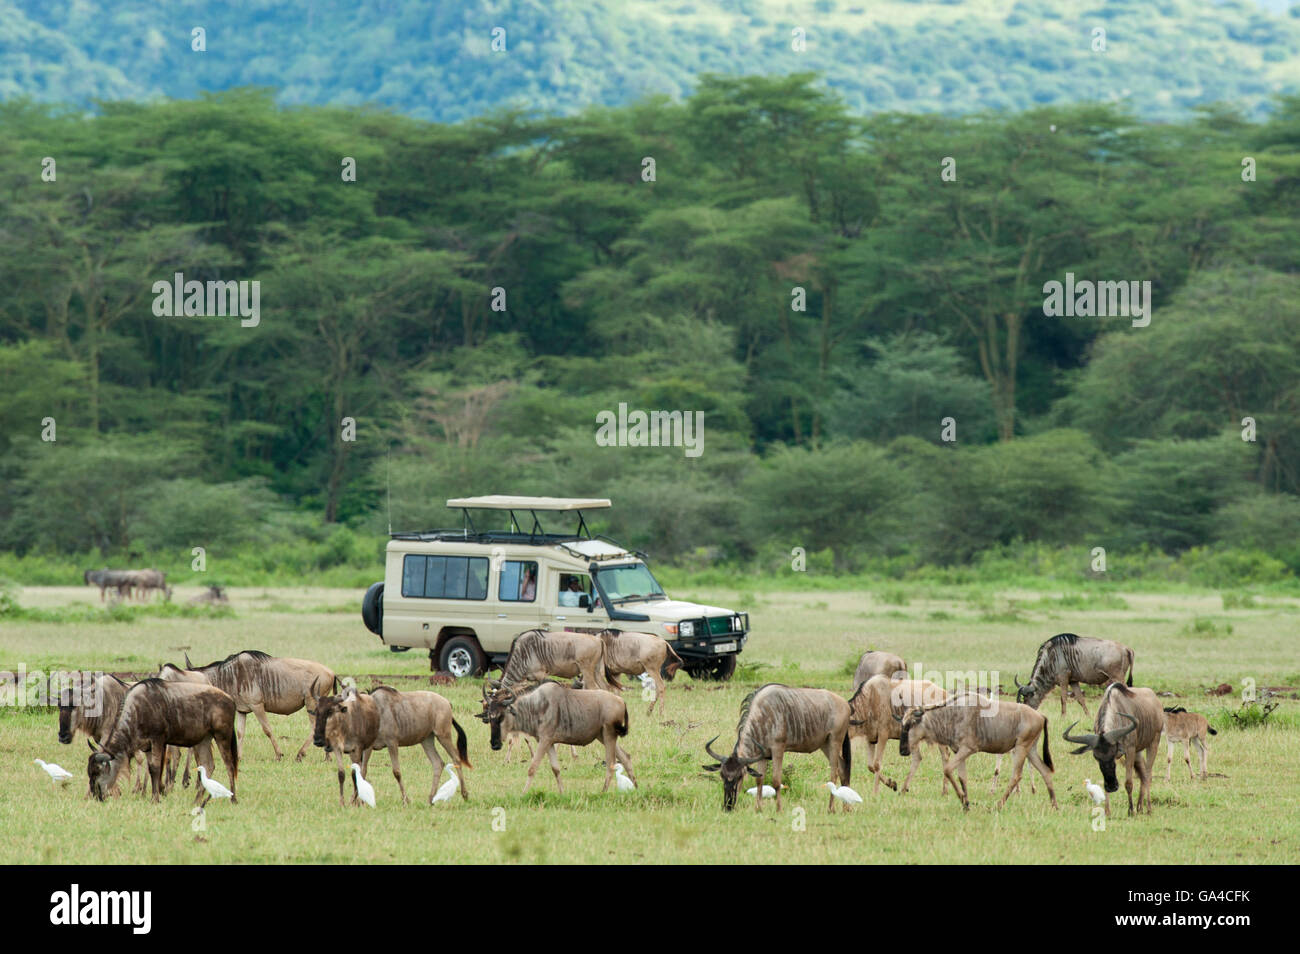 Tourists in safari vehicle watching Blue wildebeest (Connochaetes taurinus), Lake Manyara National Park, Tanzania - Stock Image